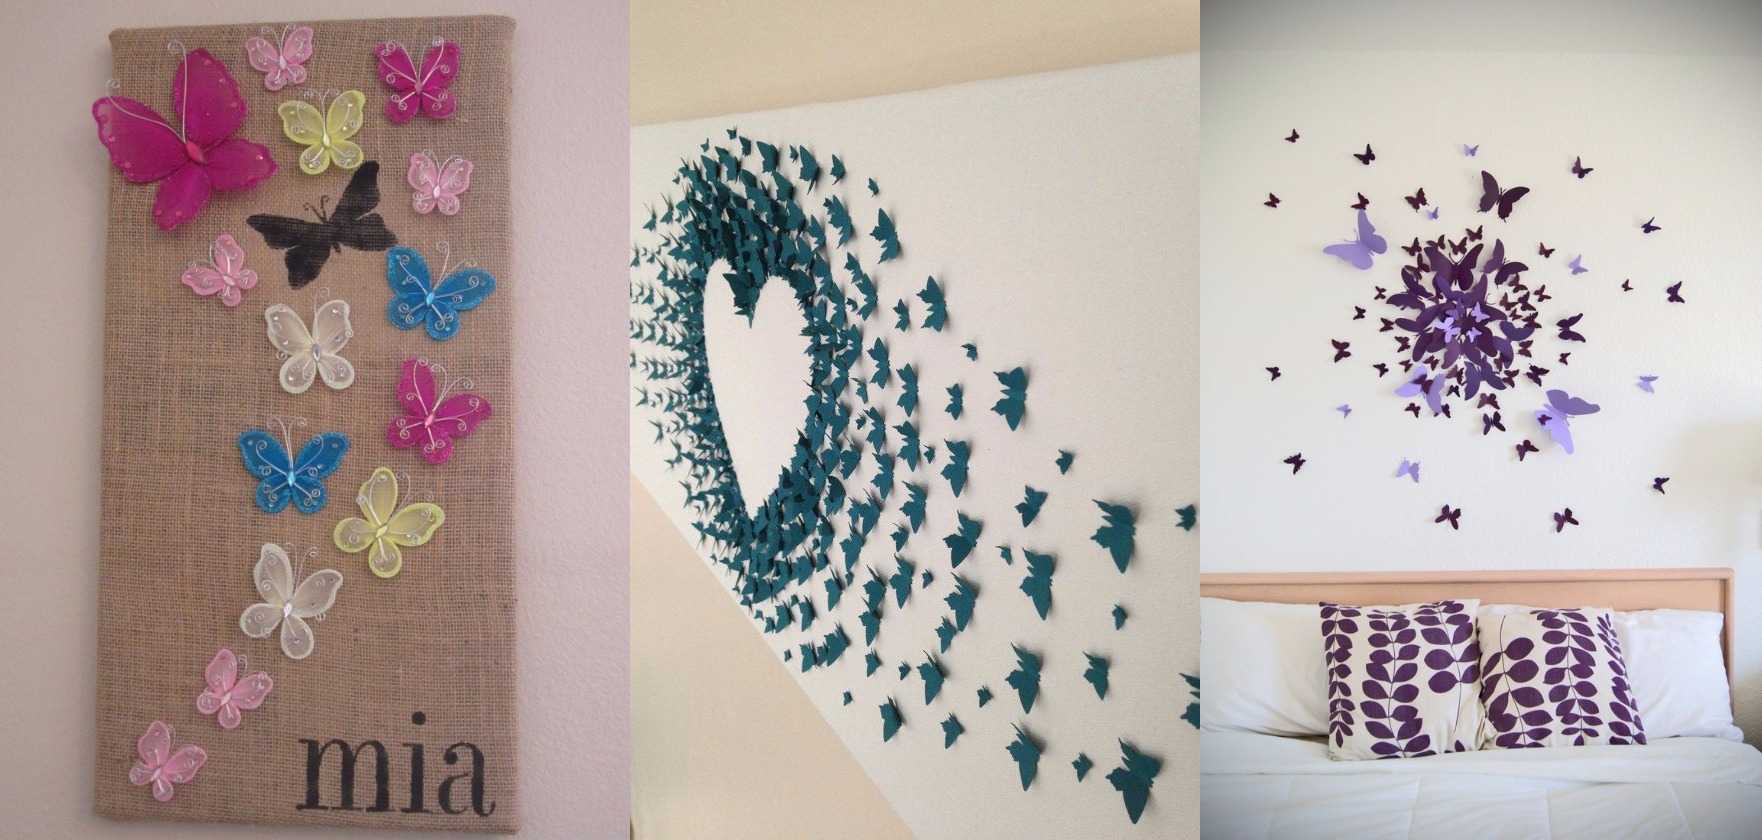 10 Diy Butterfly Wall Decor Ideas With Directions A Diy Projects